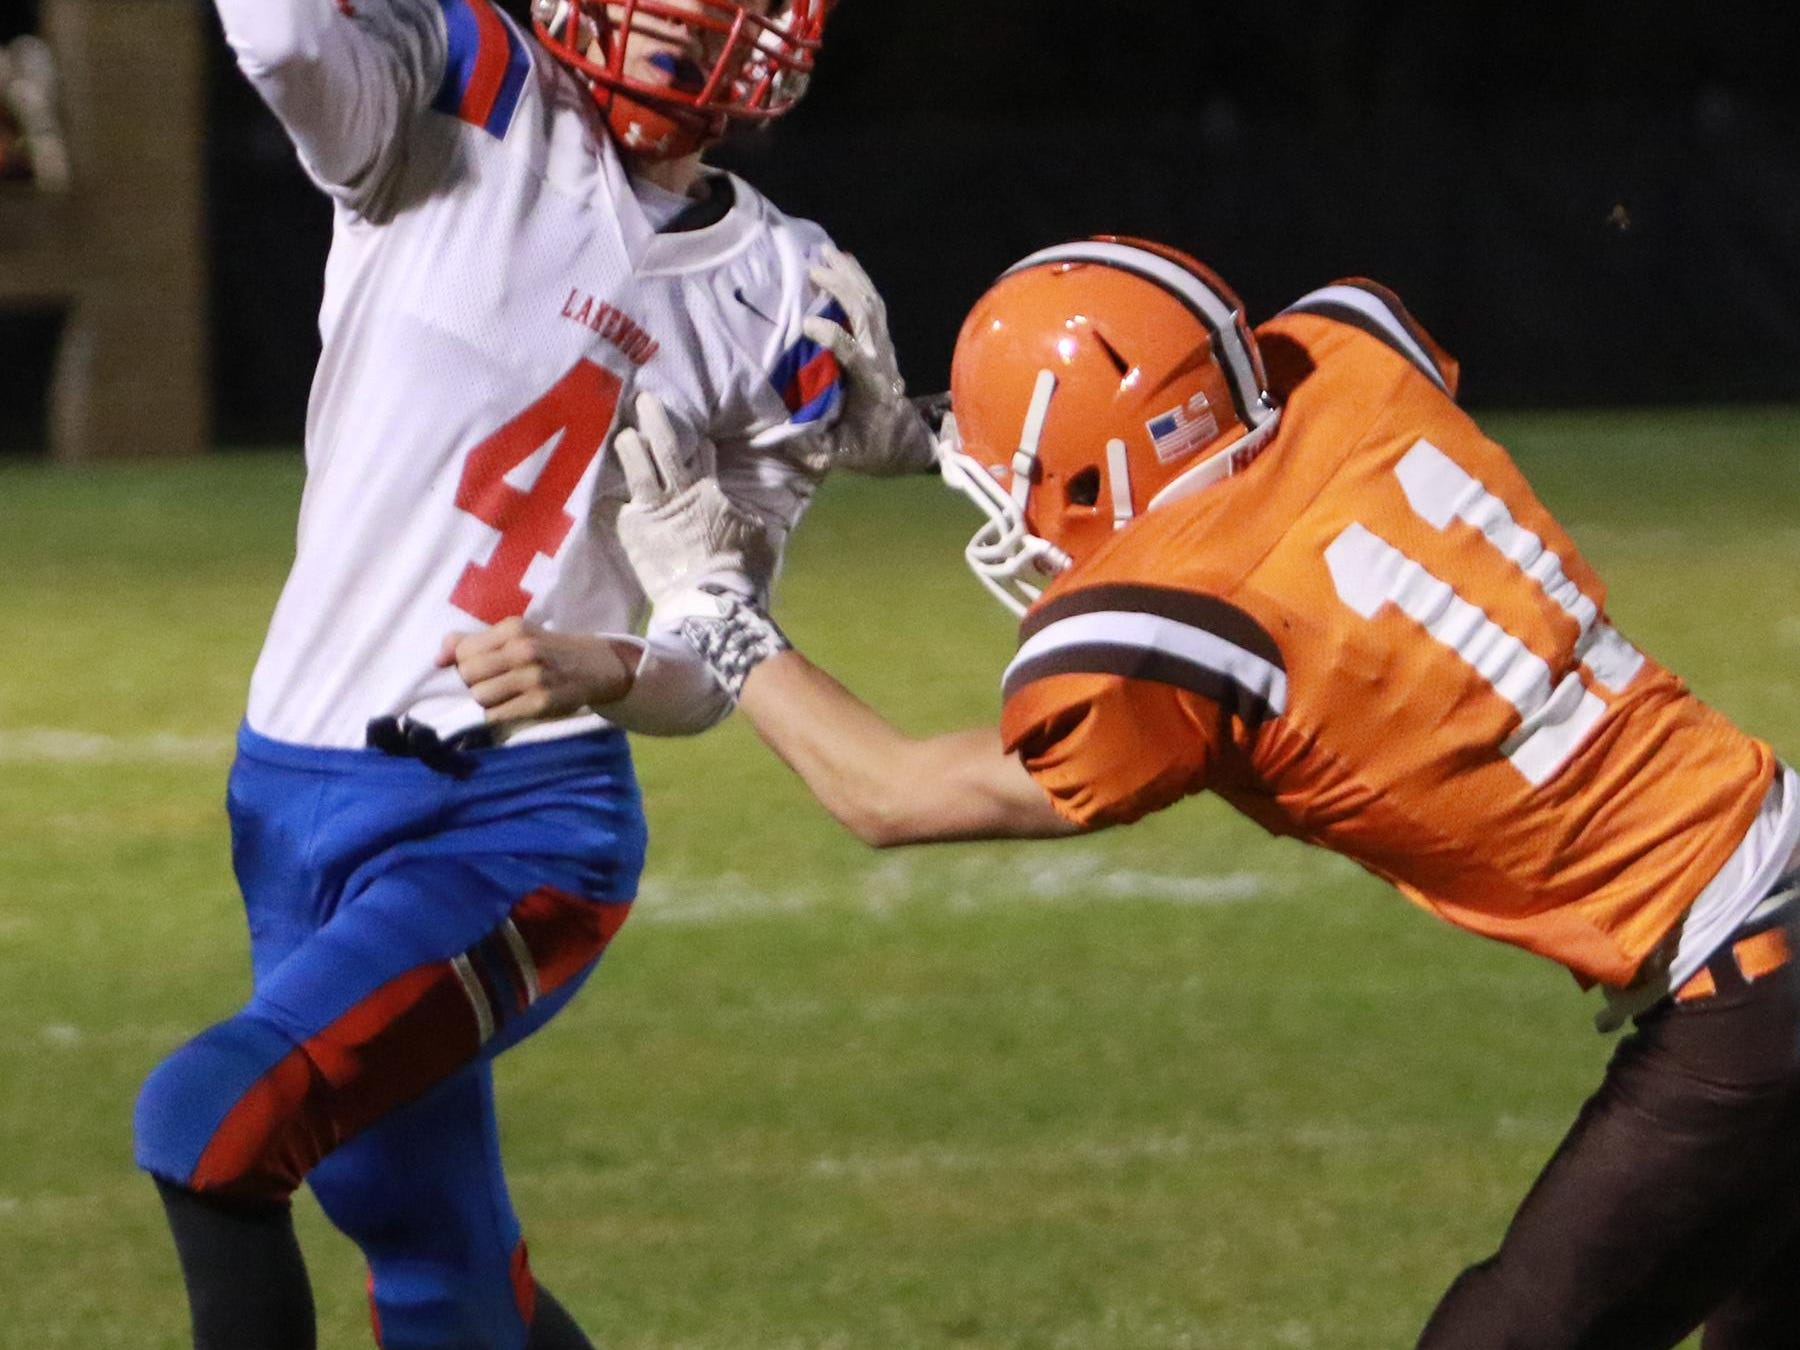 Heath senior Kordell Wiley applies pressure to Lakewood quarterback Cole Glaub during this past Friday's game.